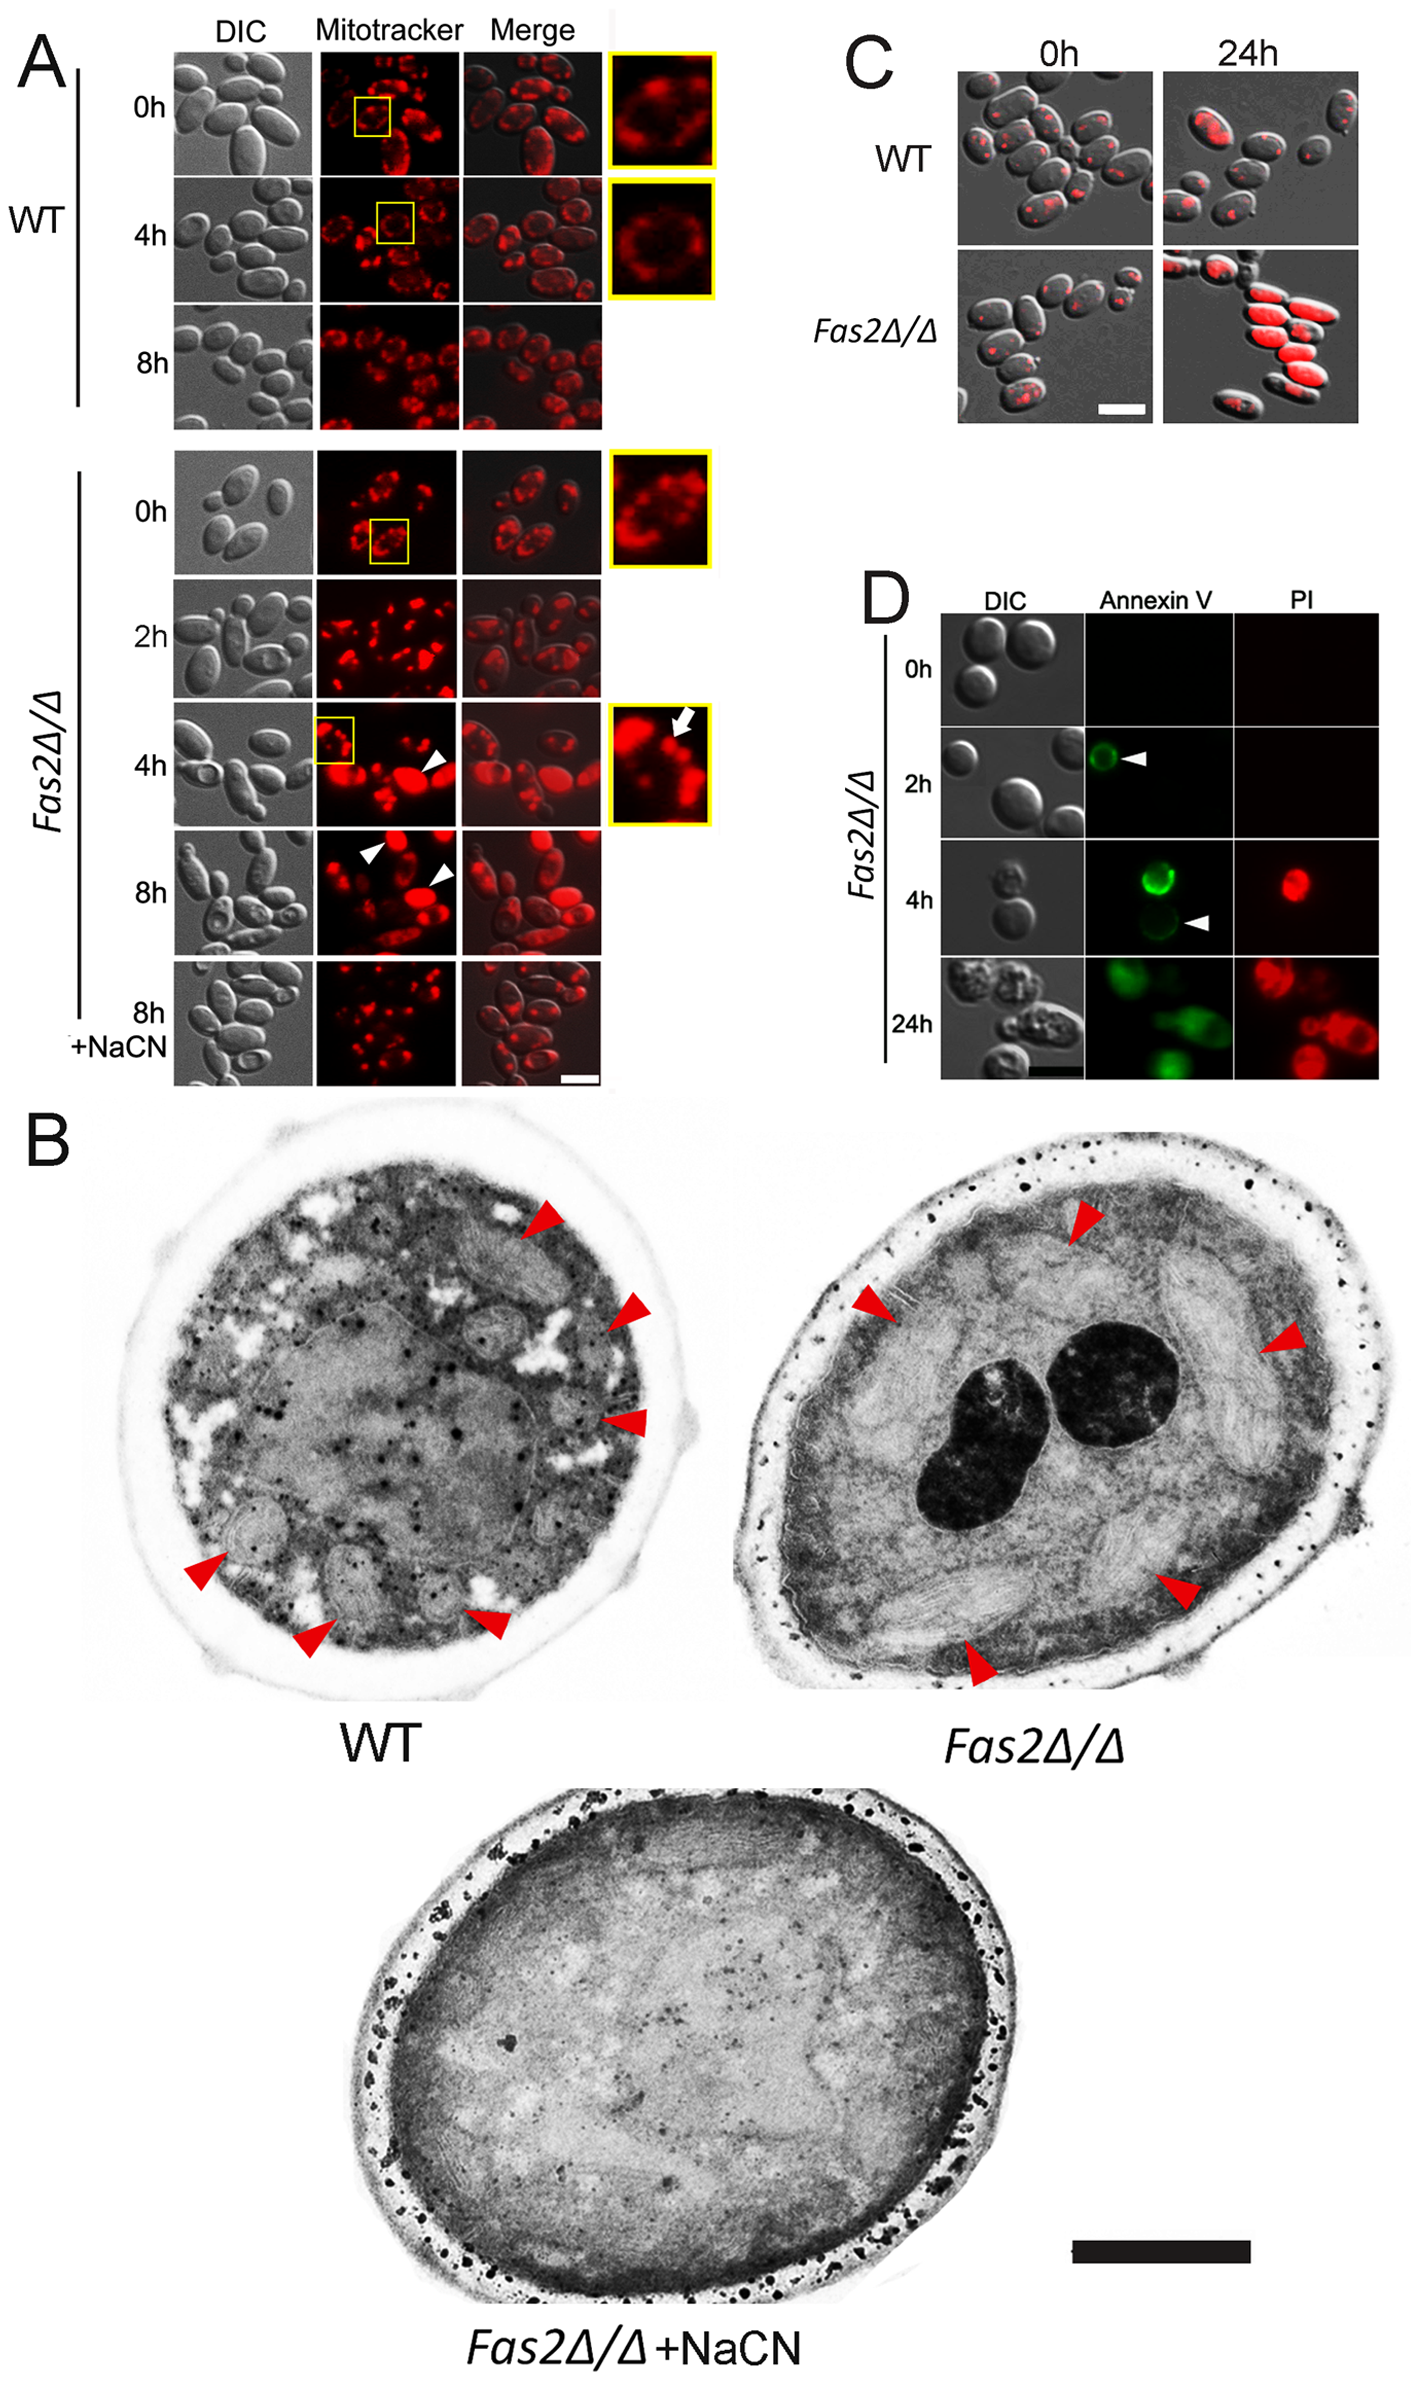 The death of <i>Fas2Δ/Δ</i> yeast cells in serum is mediated via mitochondria.